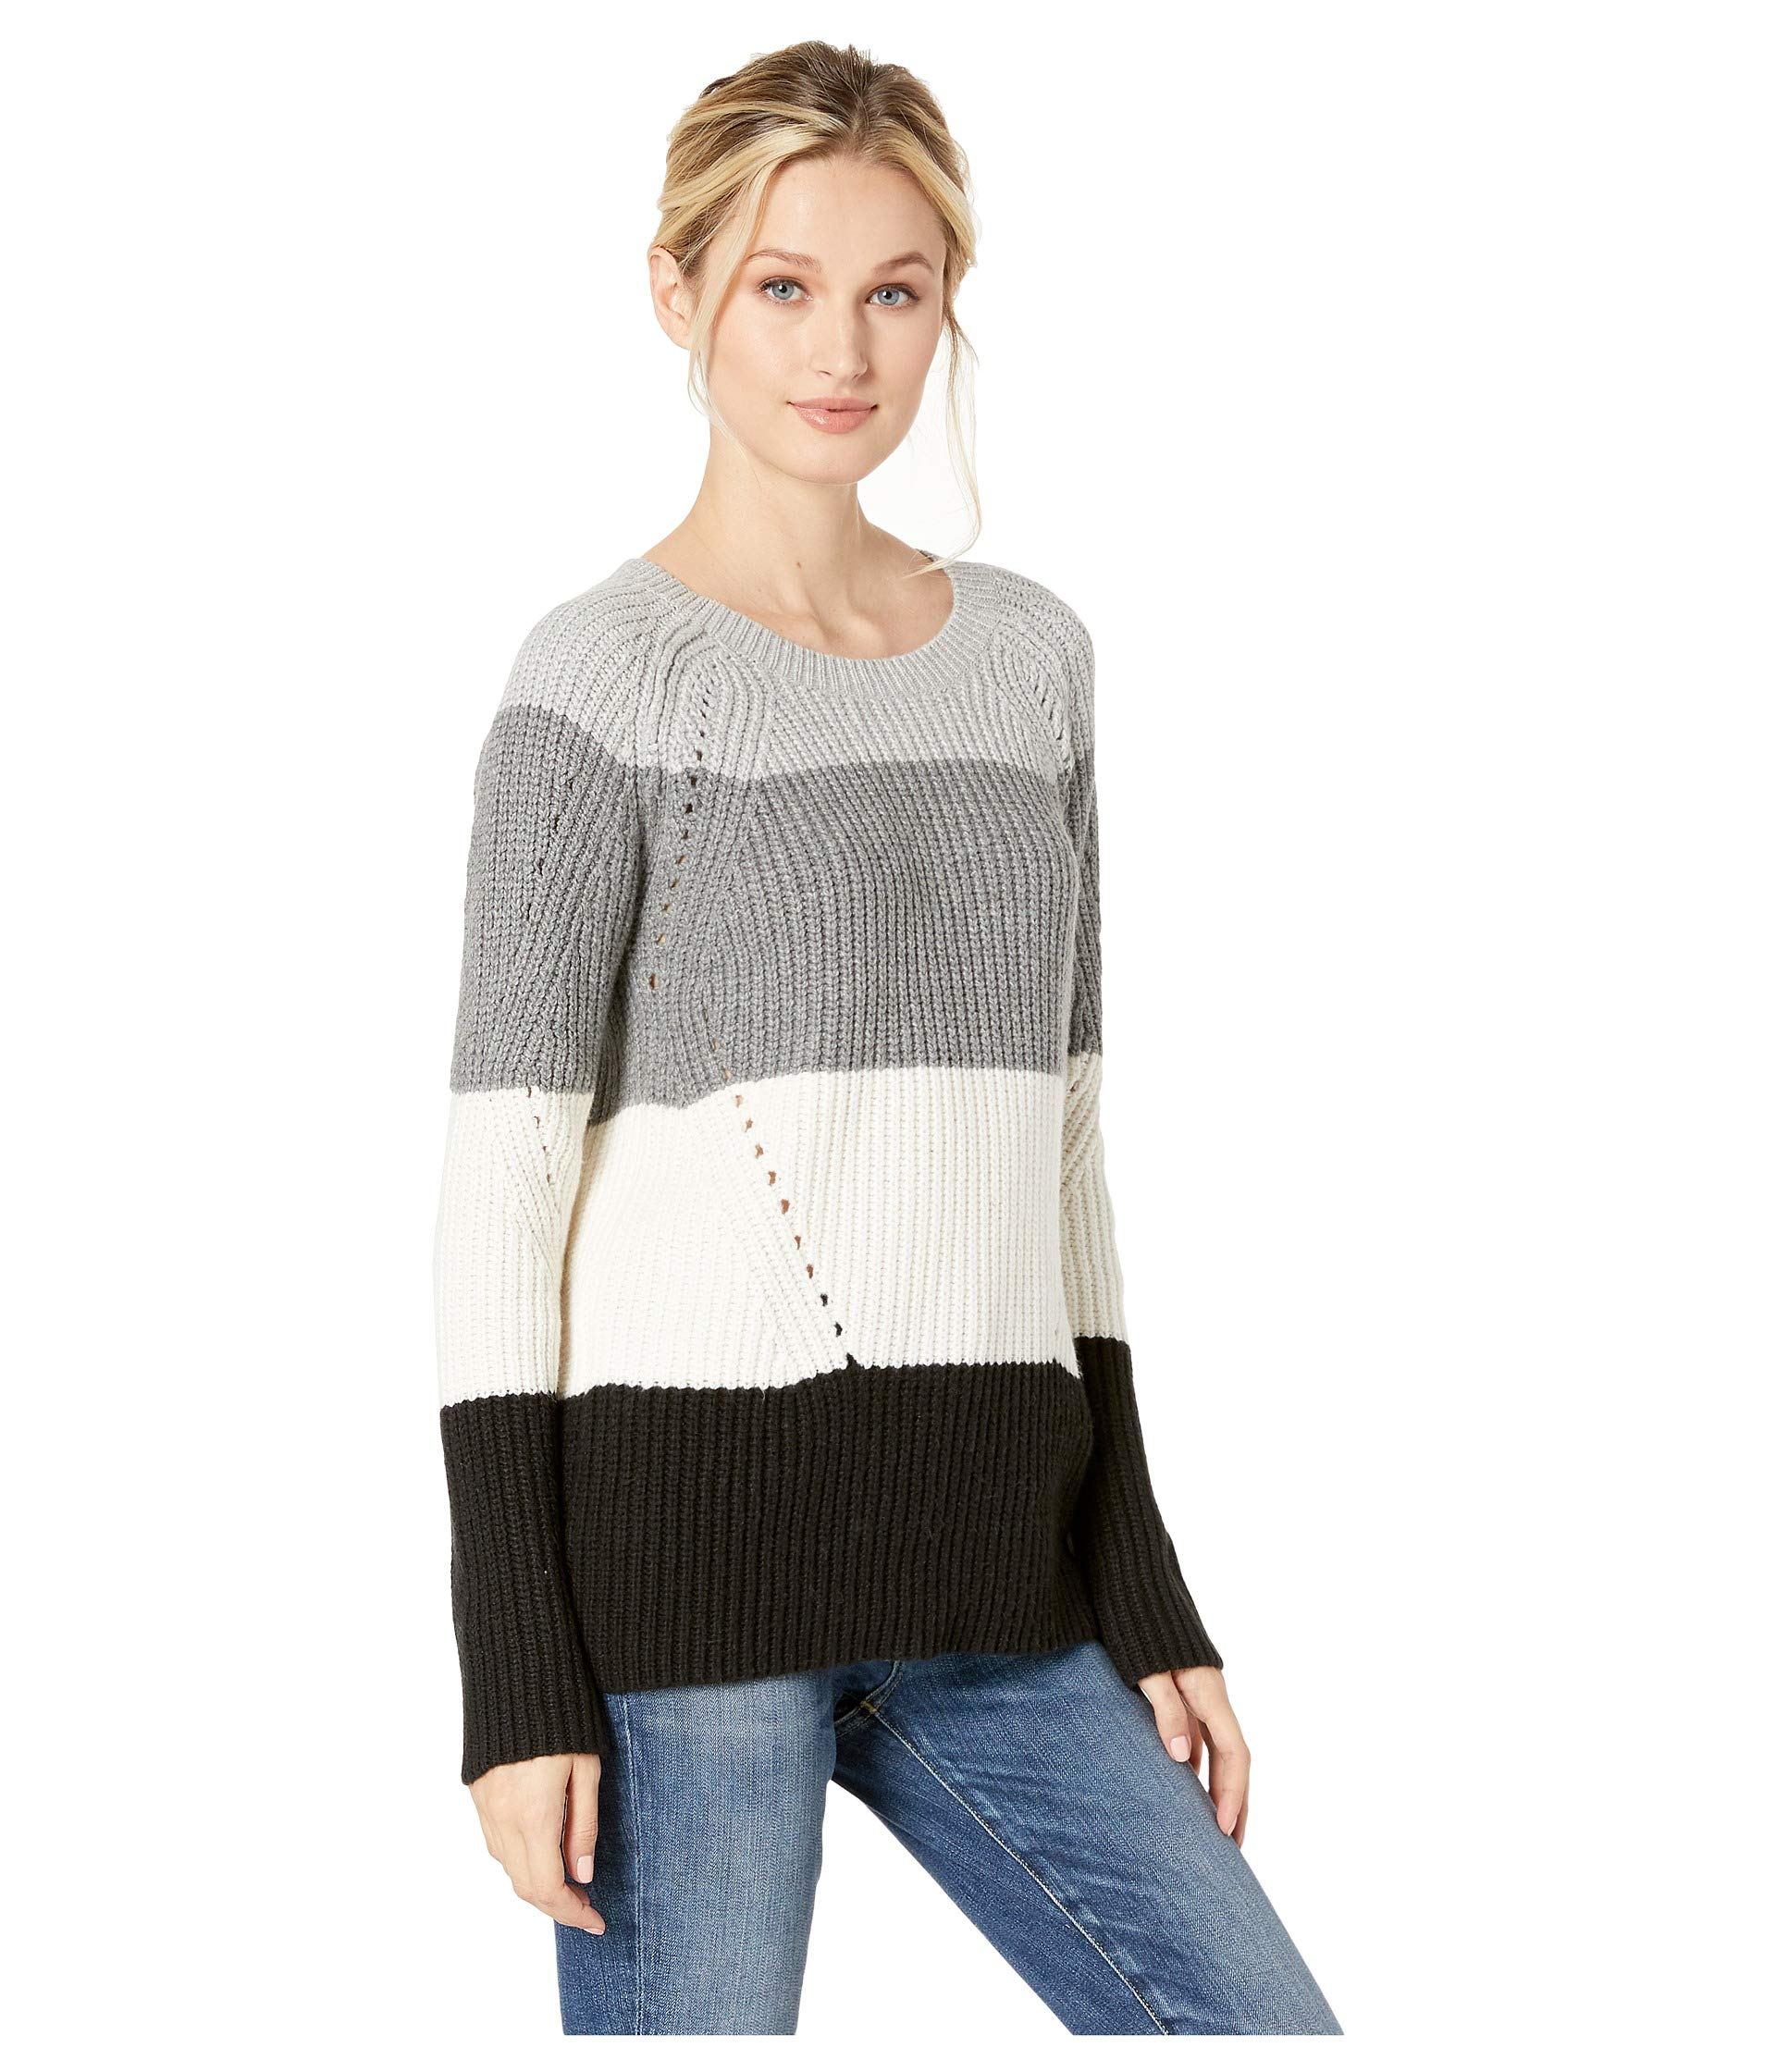 Brand Crew Lucky Natural Multi Neck Pointelle Sweater 4p7q0w7g